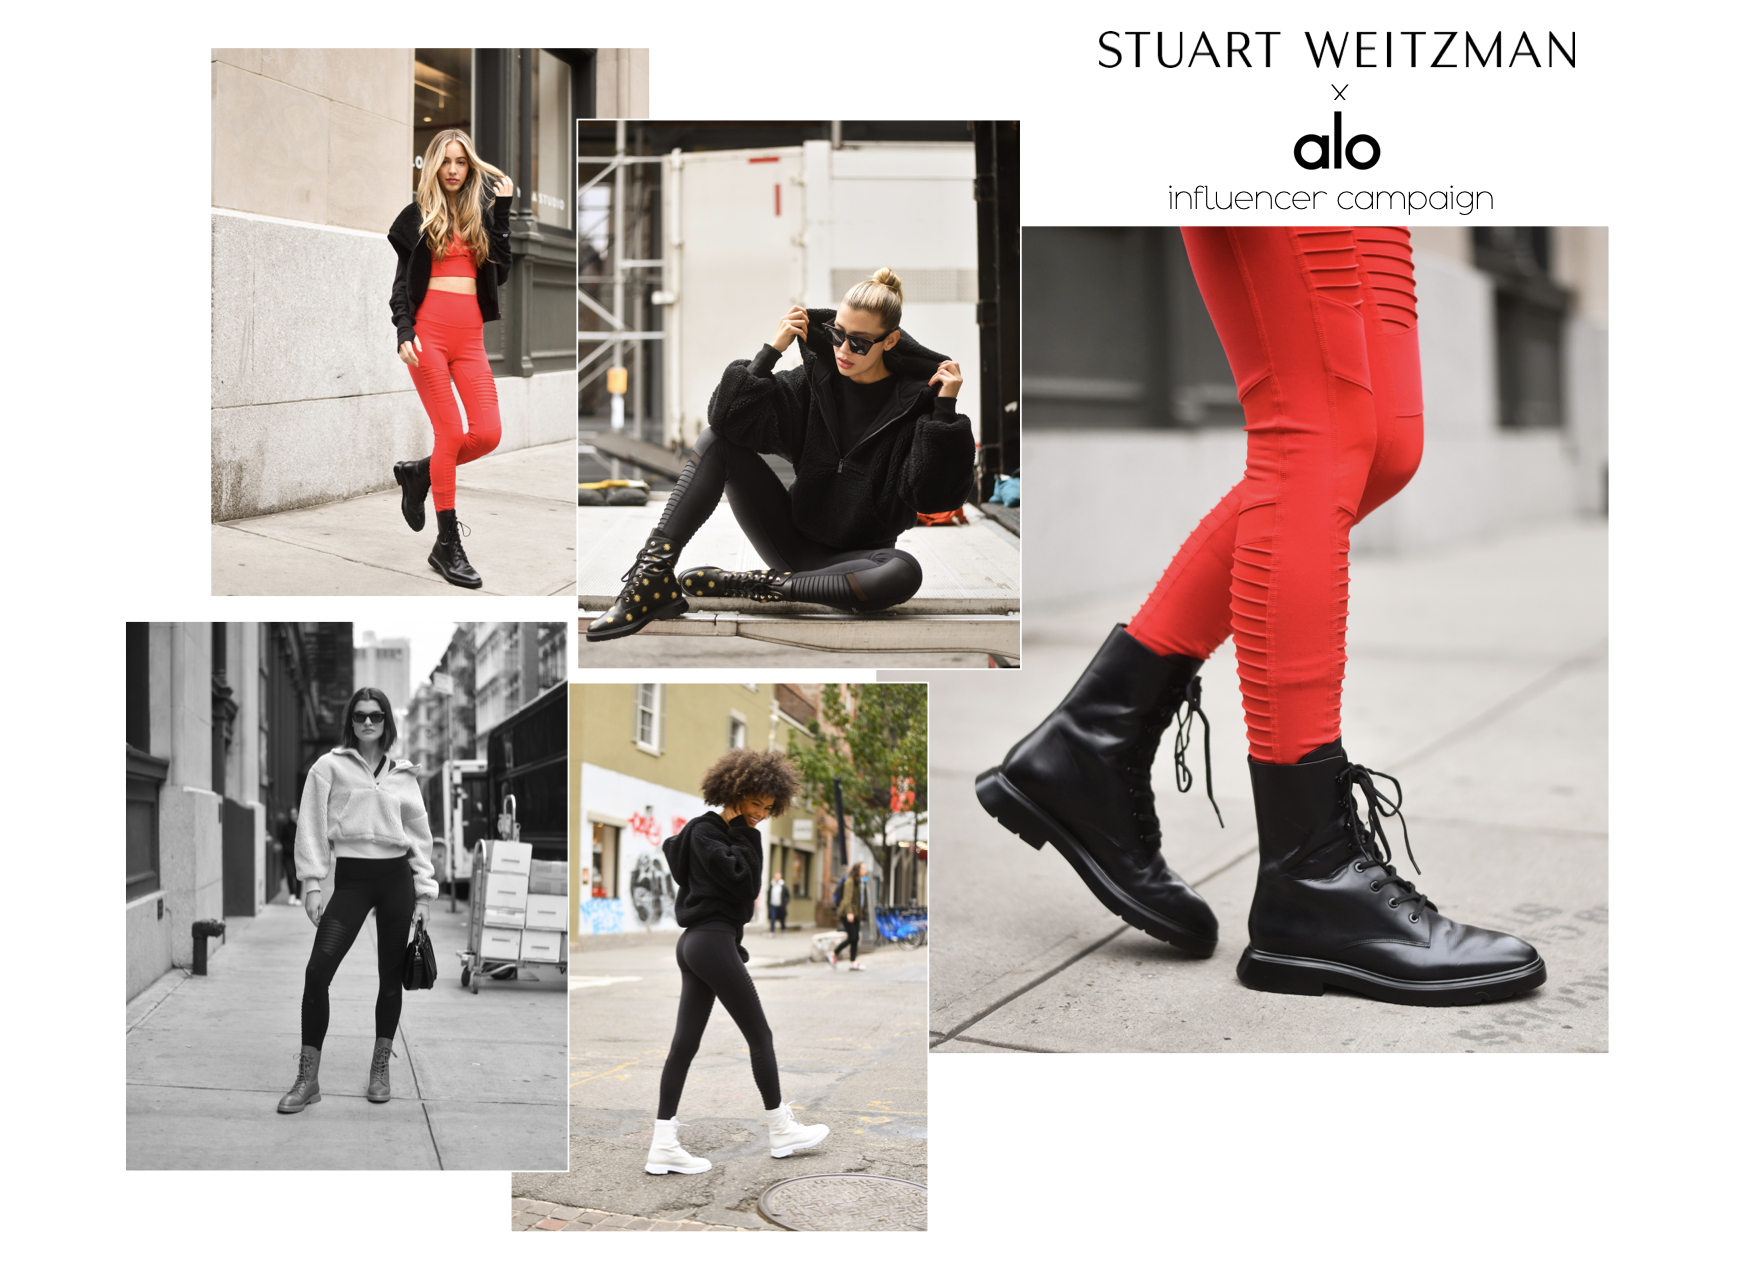 Stuart Weitzman Alo Yoga influencer collaboration launch